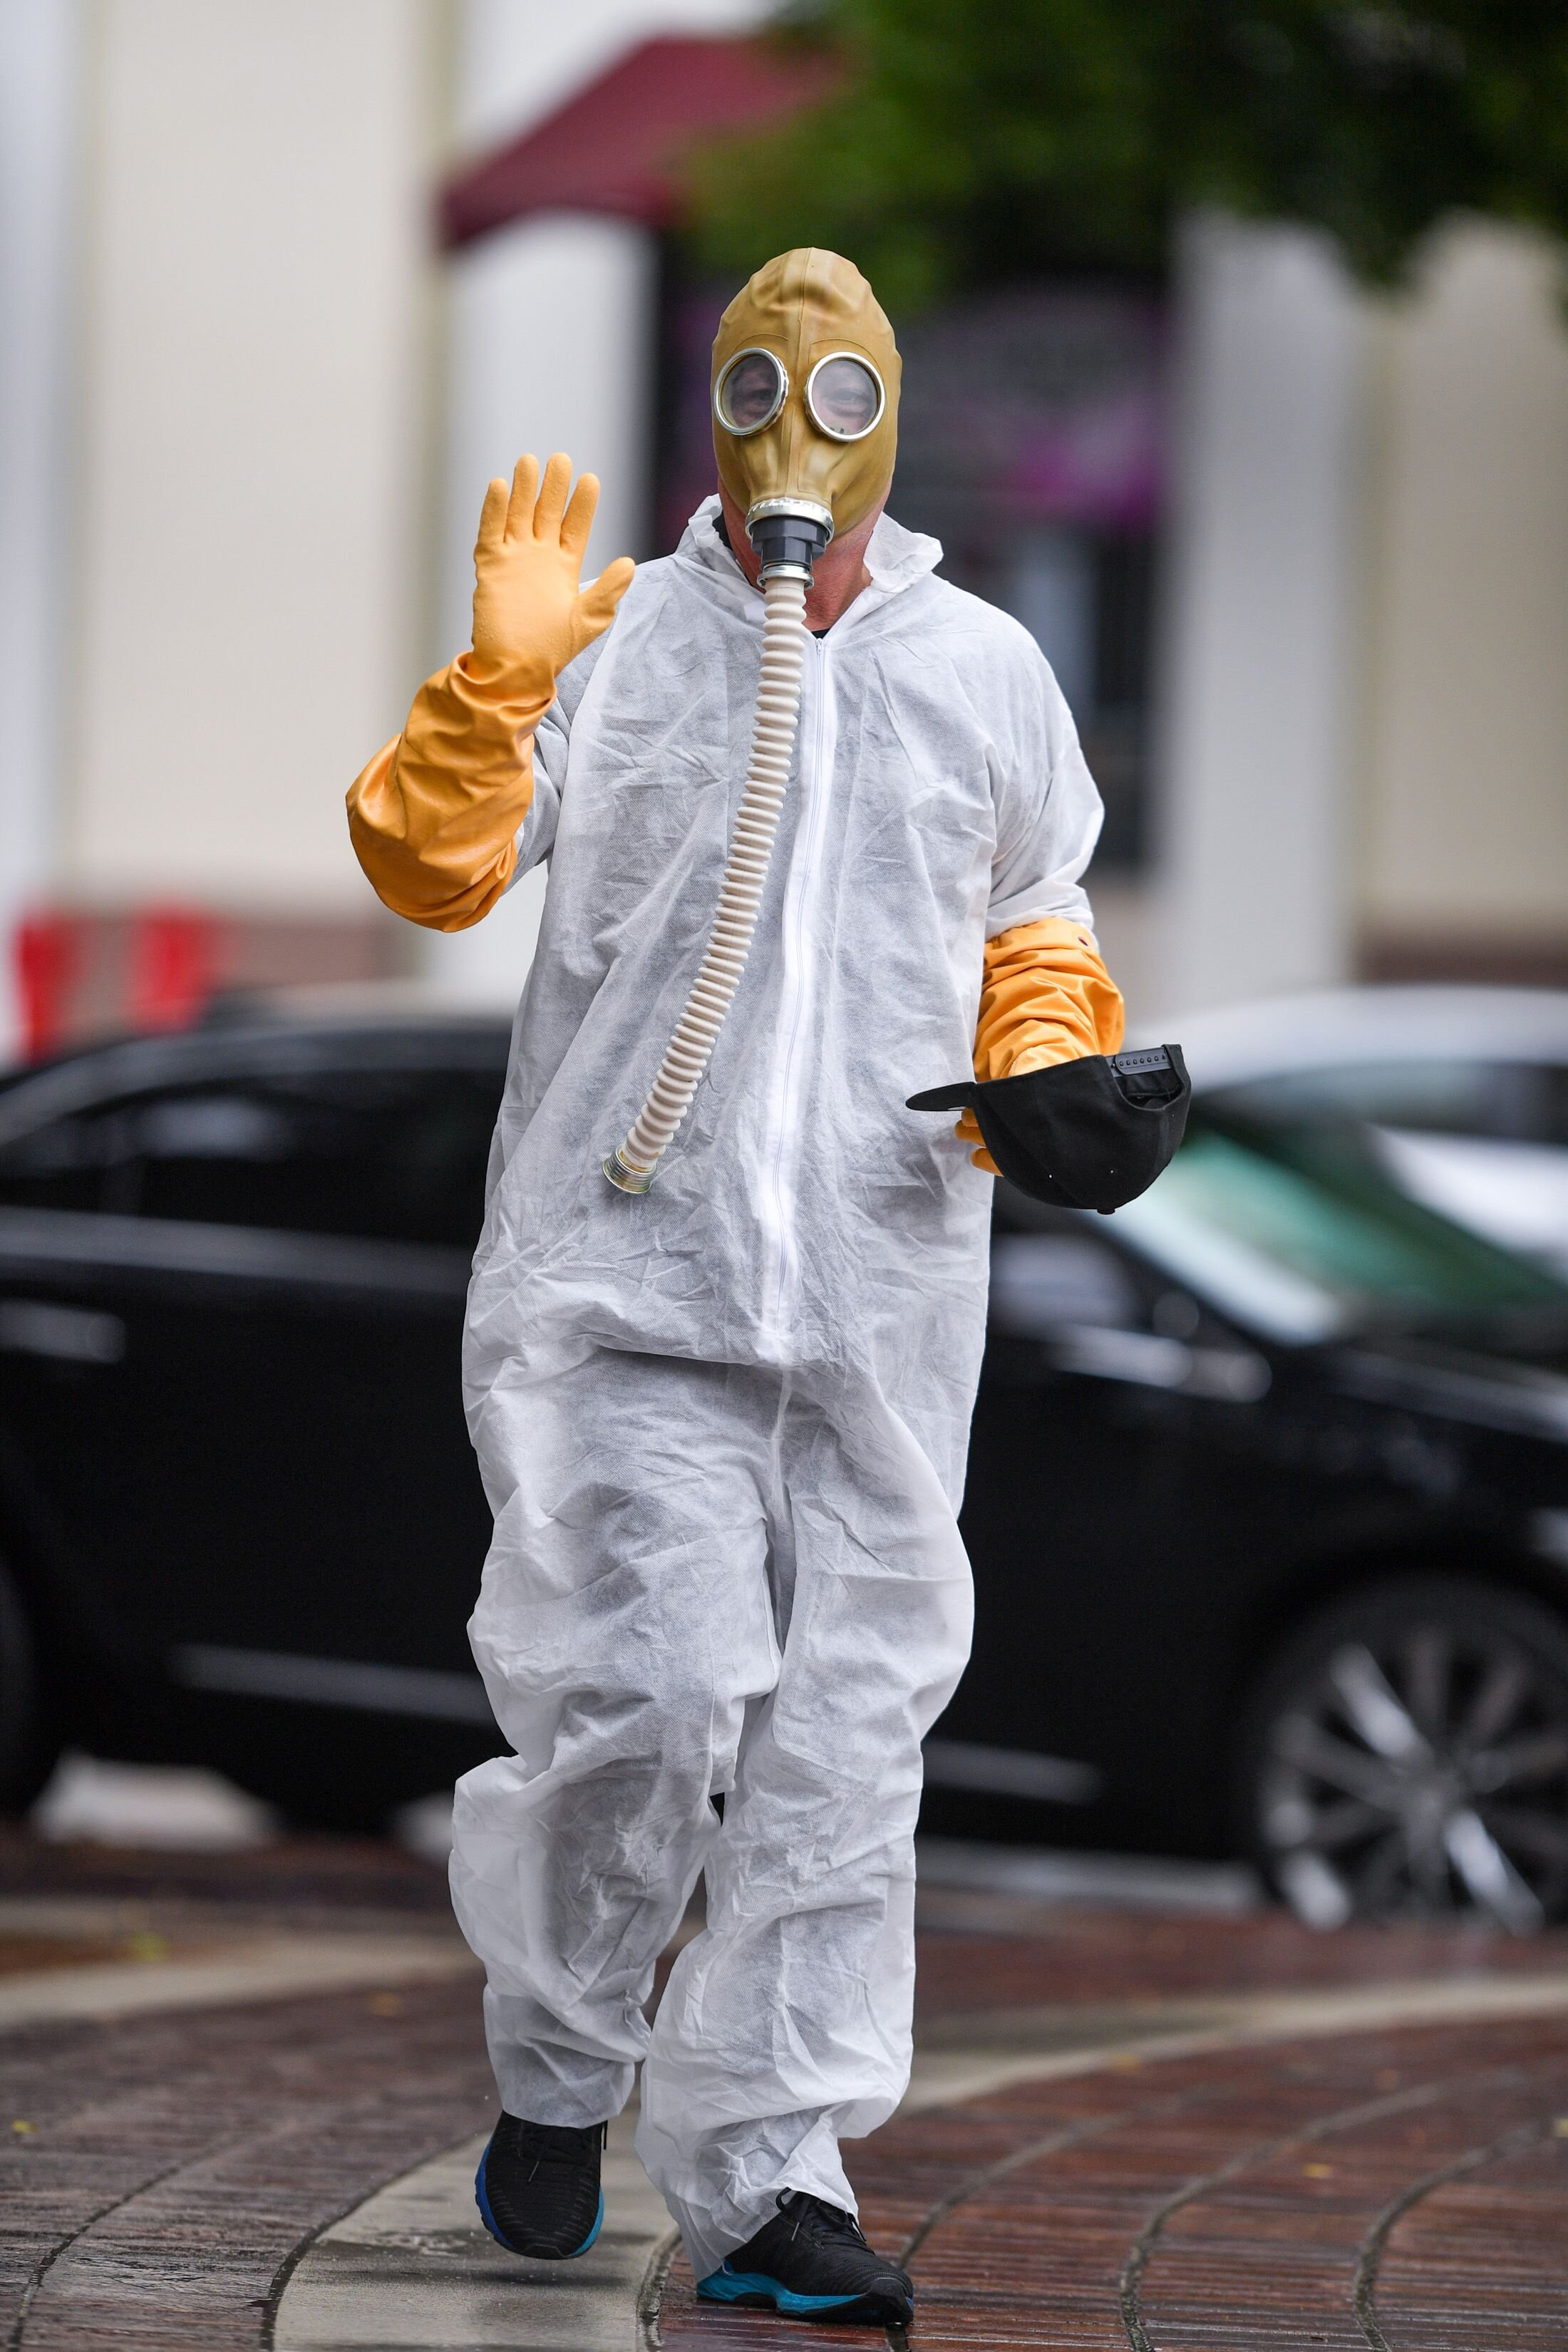 Howie Mandel wears a gas mask costume on March 10, 2020, in Los Angeles, California | Photo: PG/Bauer-Griffin/GC Images/Getty Images